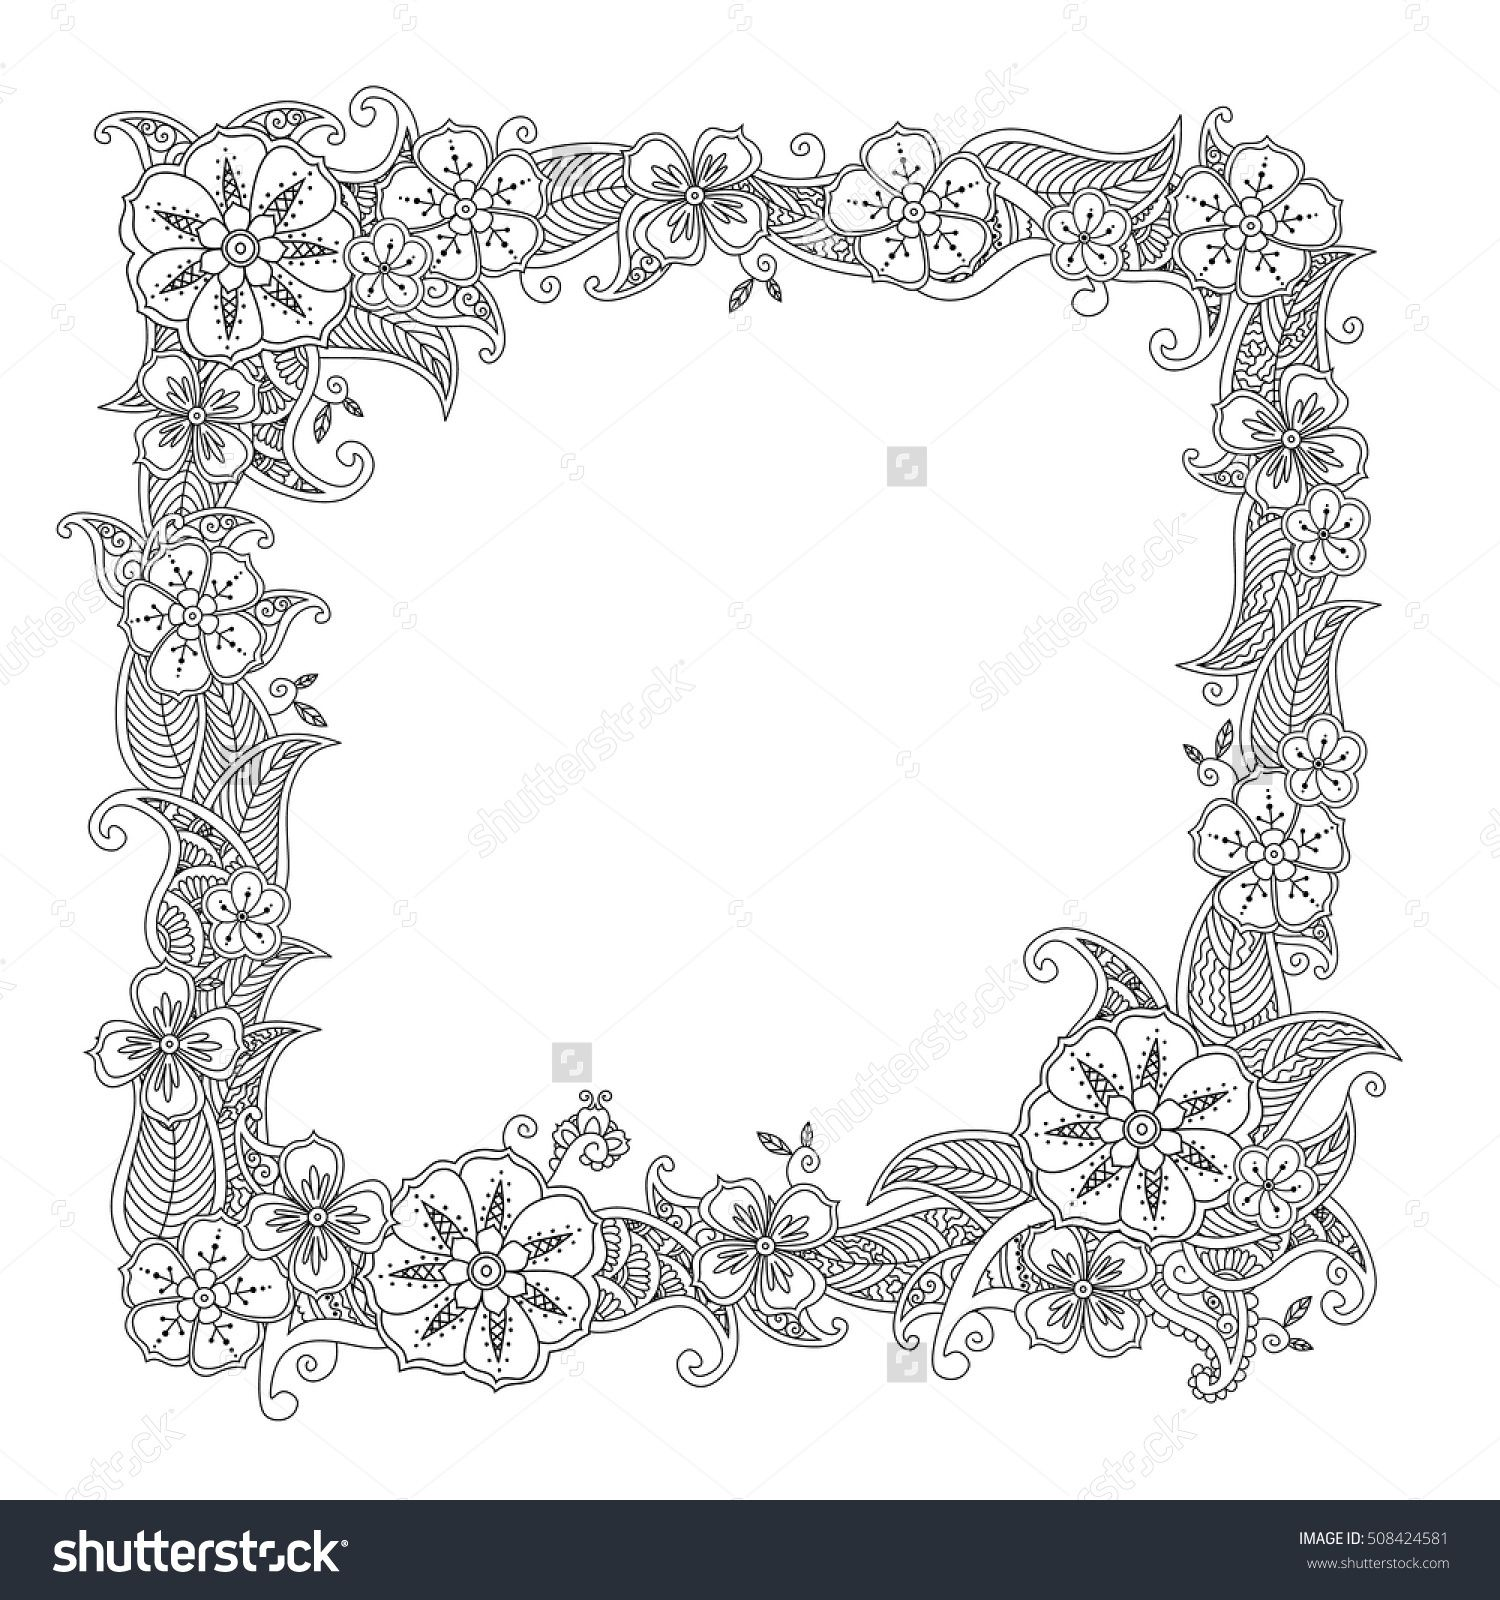 Floral Hand Drawn Square Frame In Zentangle Style Isolated On White Background Doodle Flowers Decorative Border Coloring Book For Adult And Children